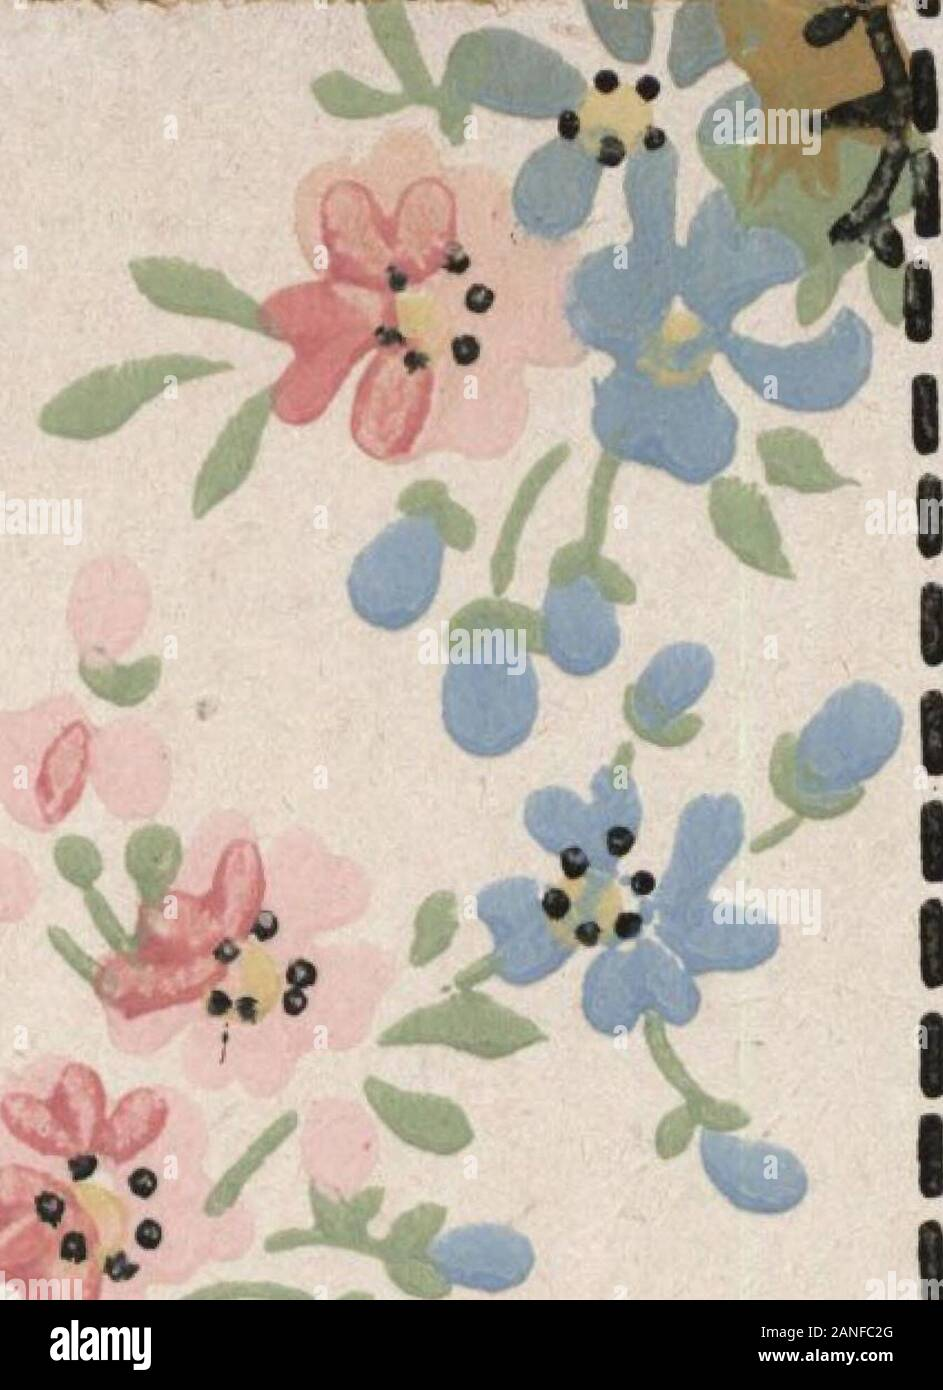 Wall paper for every home, 1916 . etty room.It is one of those delicate wall paper patterns which are somuch in demand at present. The combination scenic and floral border is 9 inches wide and showsbeautiful pink blossoms in the foreground with a calm lake scene in thedistance. The colors used in this border are blended and soft and overall is a white line and dot overprint which assists in blending the colorsand making them even more delicate. The ceiling design is printed in faintest pink on a white background, sothe general effect is one of harmony with the border and side wall. This Mariet Stock Photo